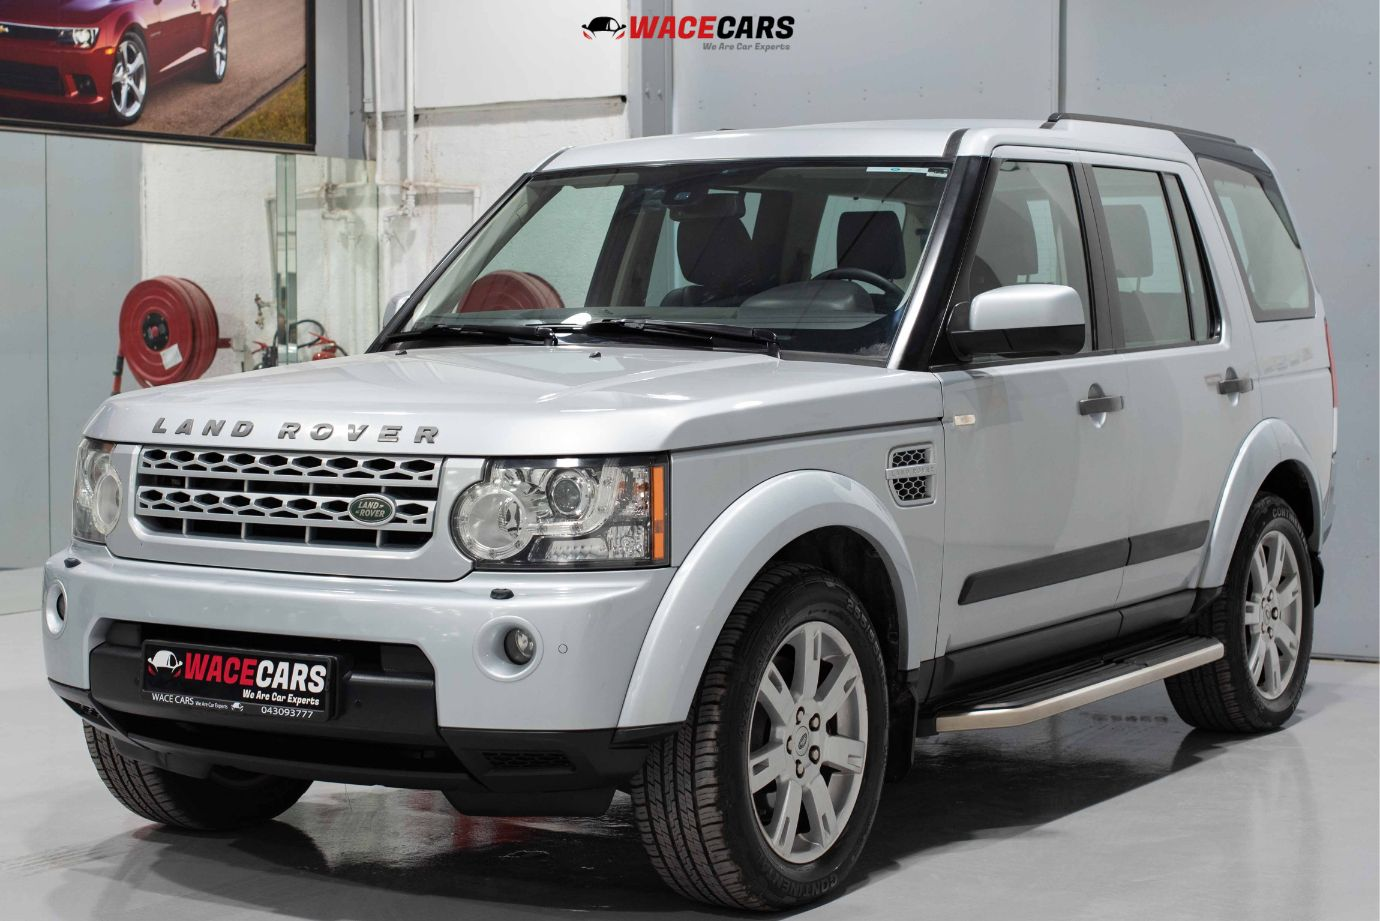 Used Land Rover LR4 2011 for sale in Dubai